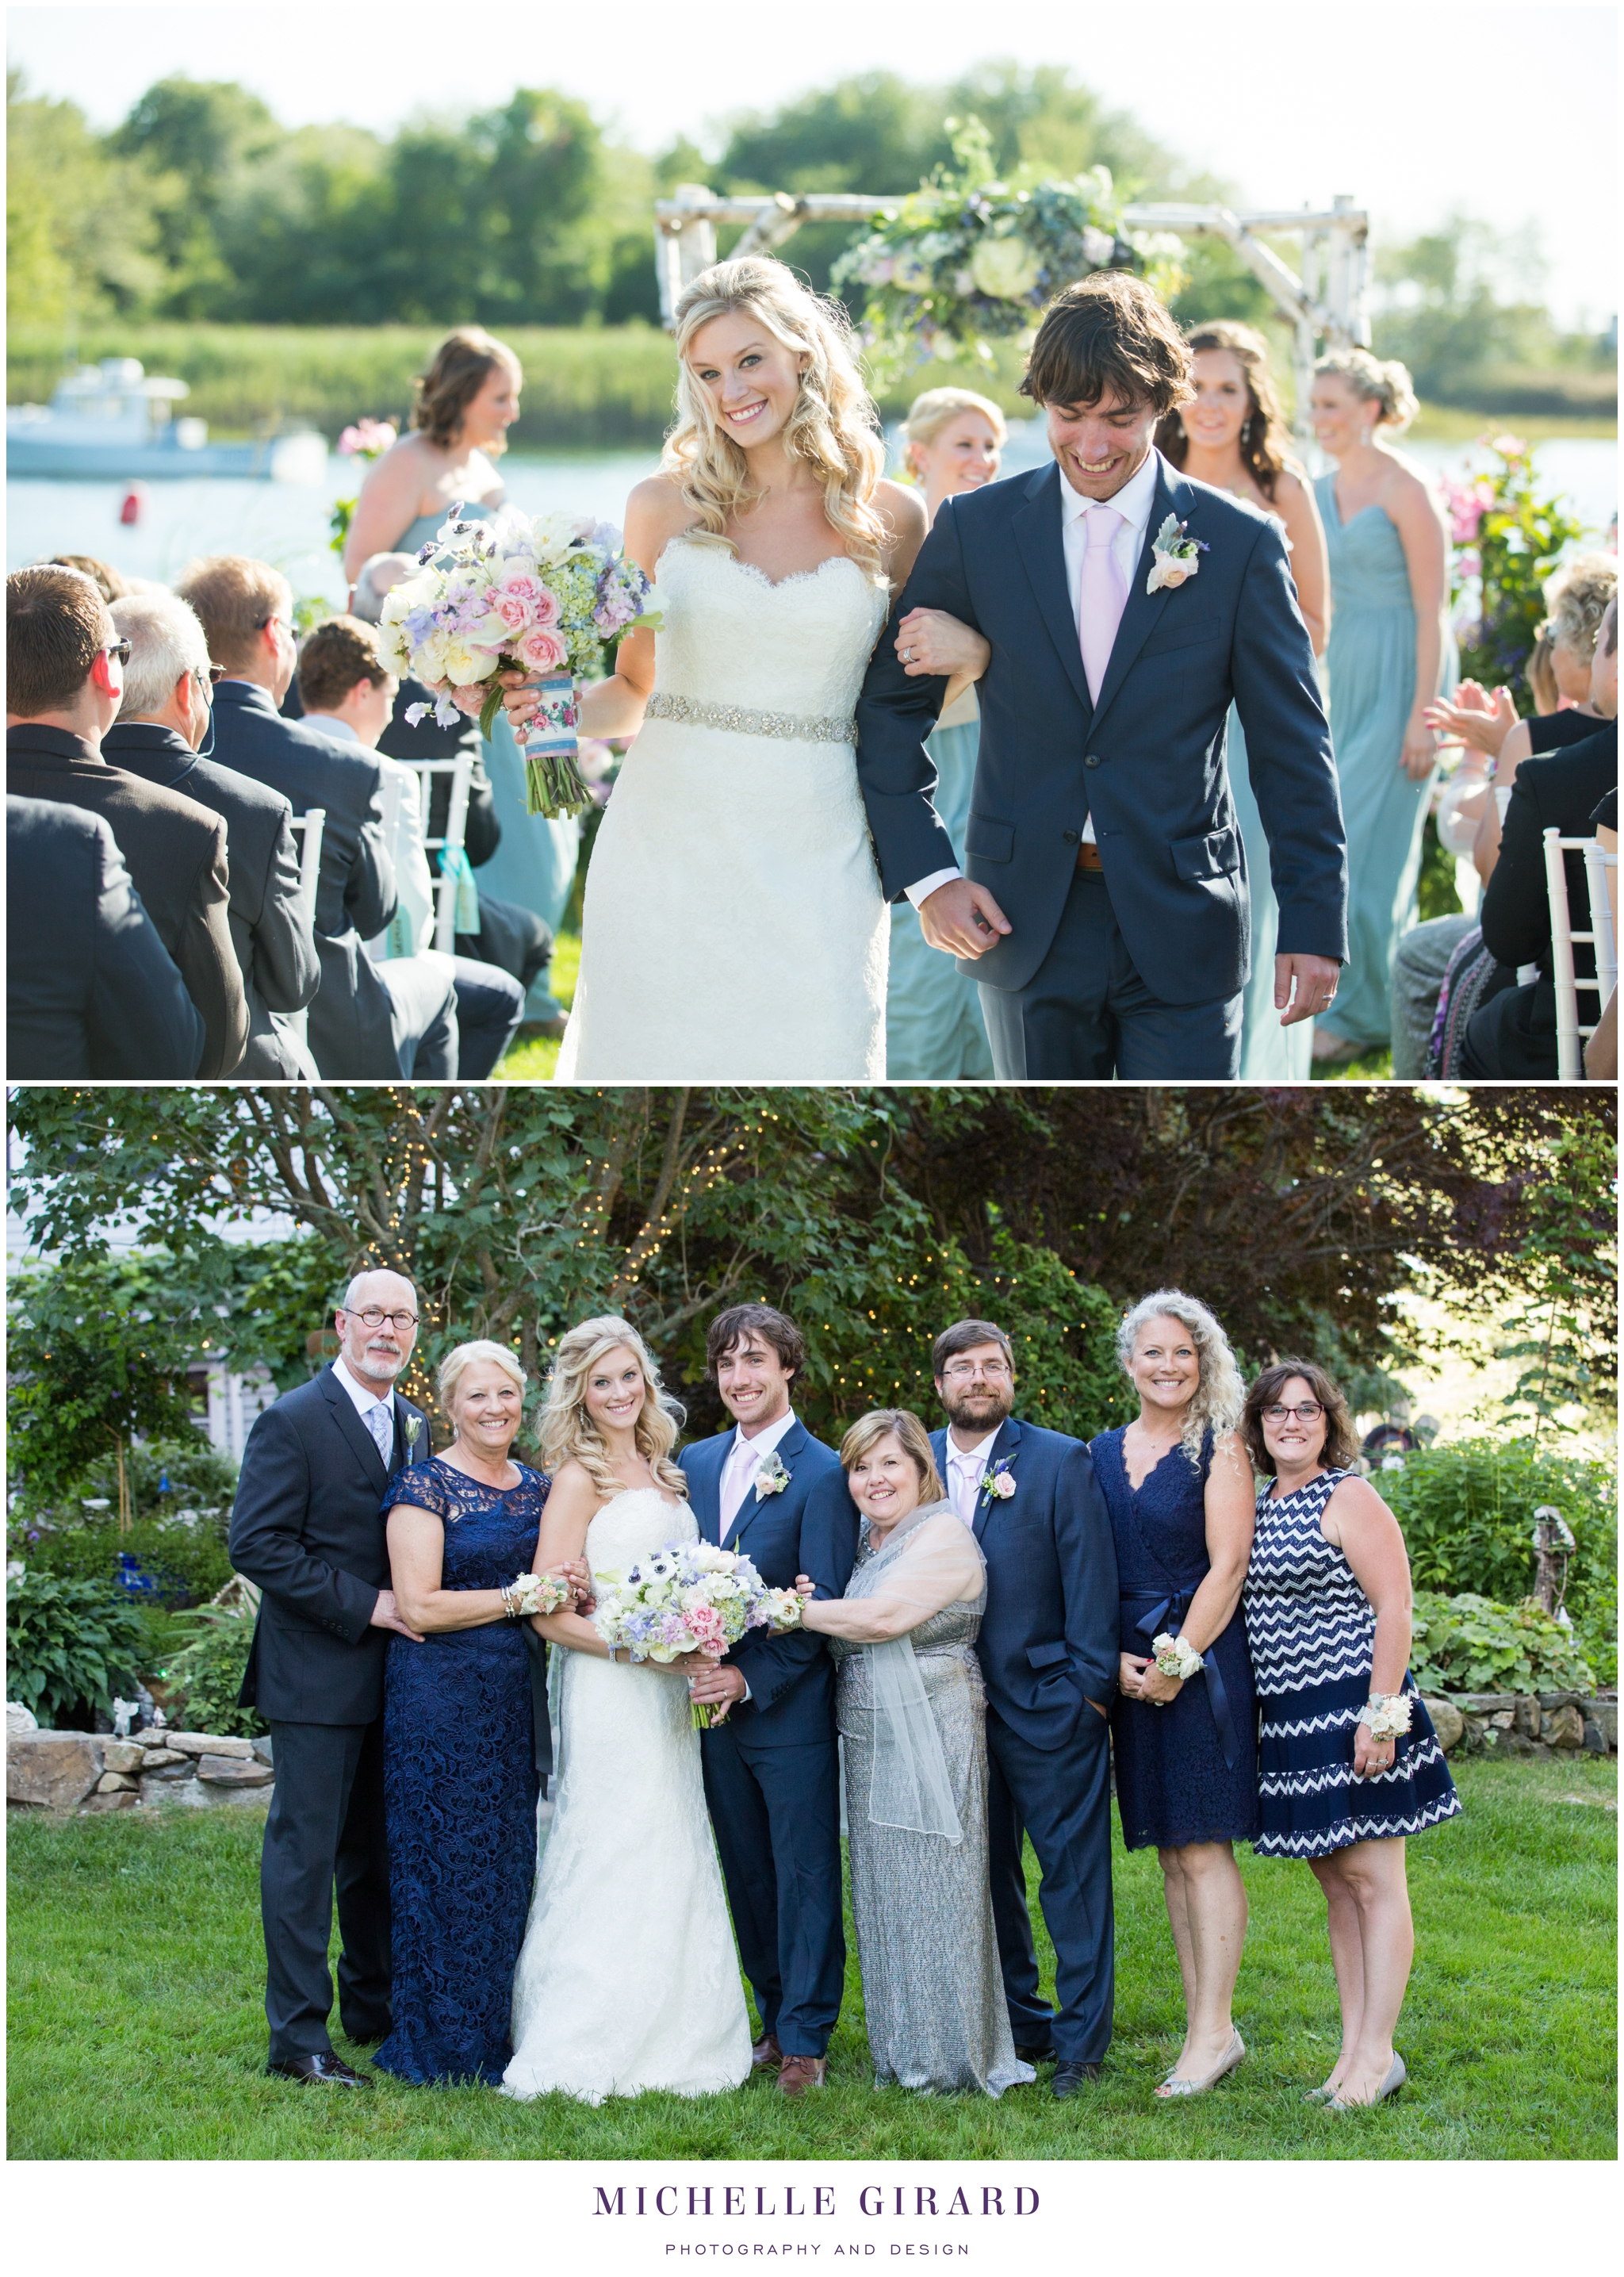 KennebunkportMaineWedding_NonantumResort_MichelleGirardPhotography38.jpg